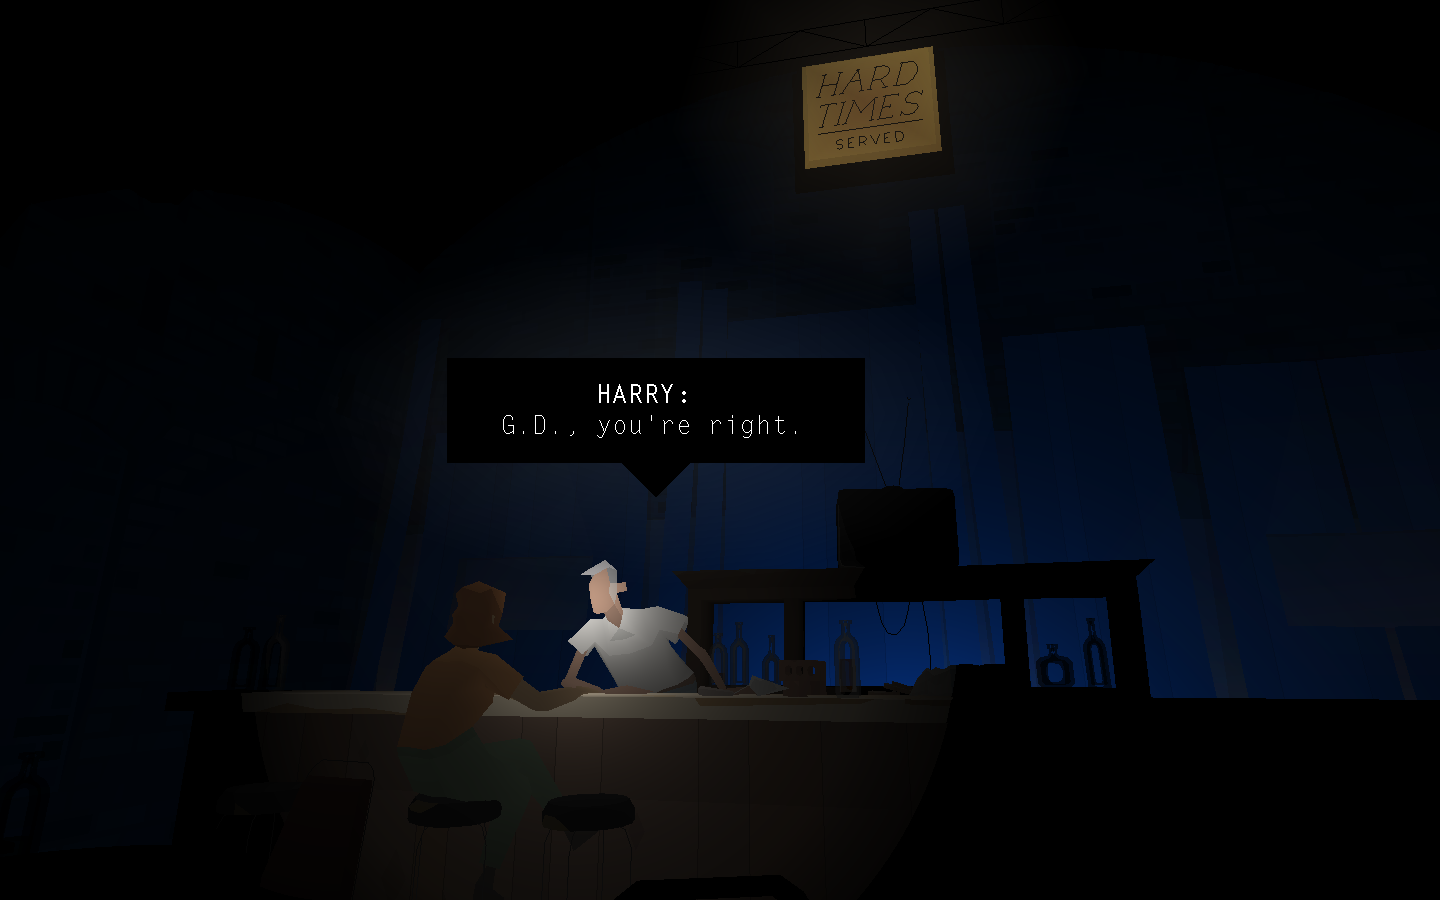 091: Kentucky Route Zero (The Entertainment)